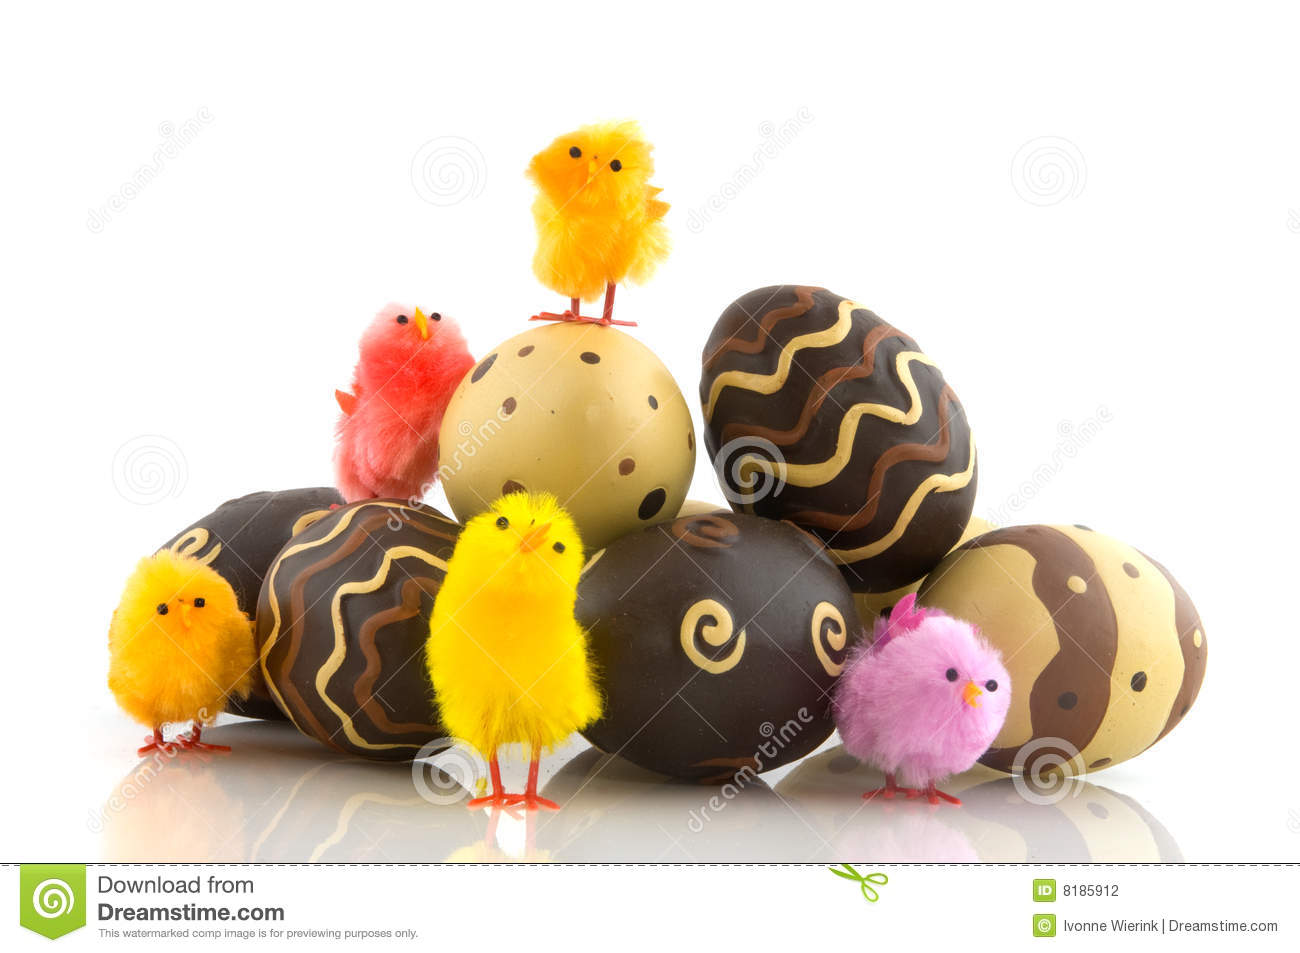 Chocolate Easter Eggs With Chicks Stock Photography - Image: 8185912